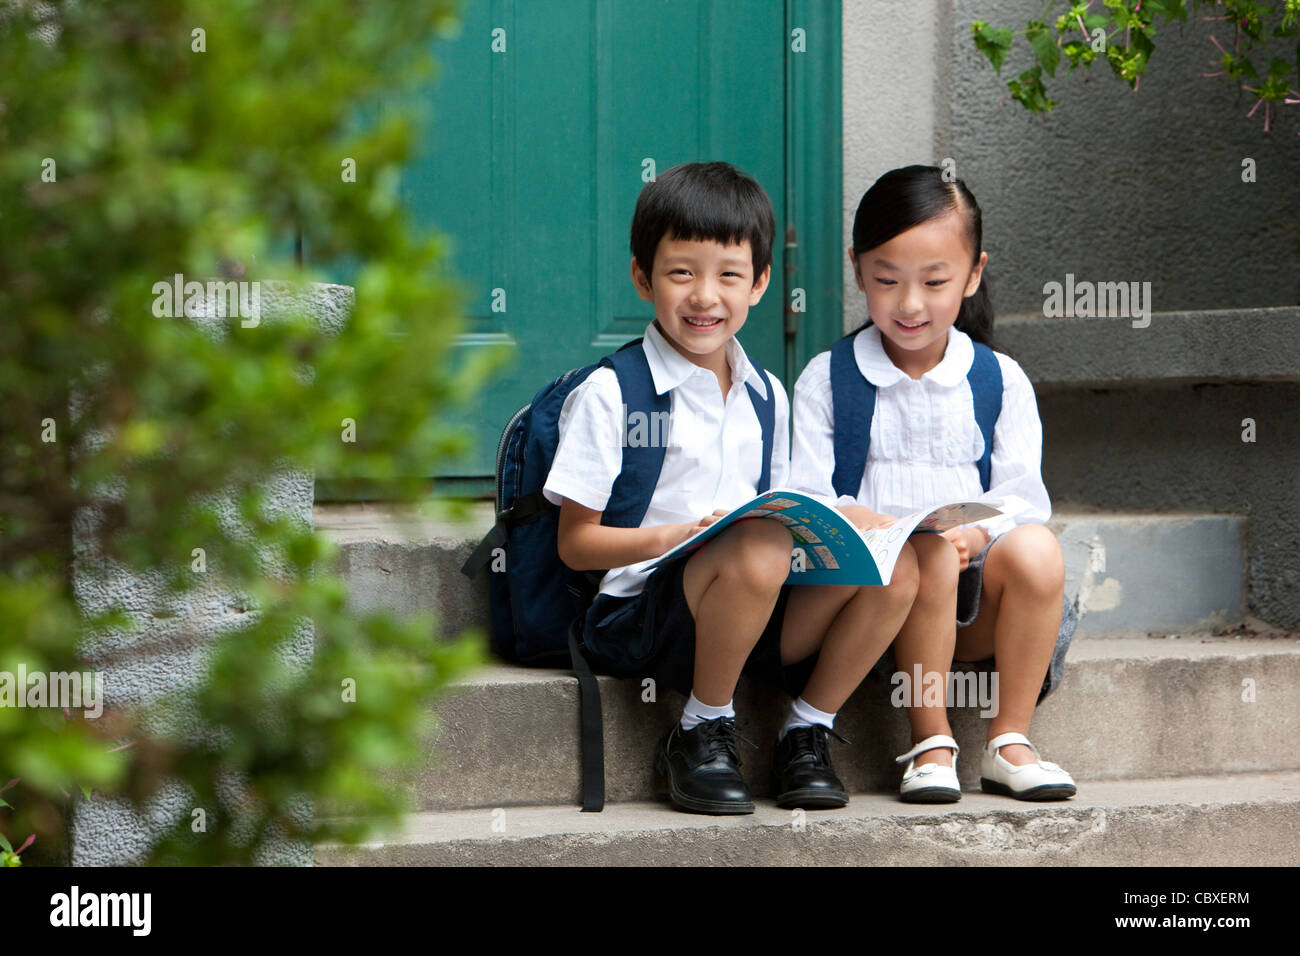 Two school children studying outside - Stock Image